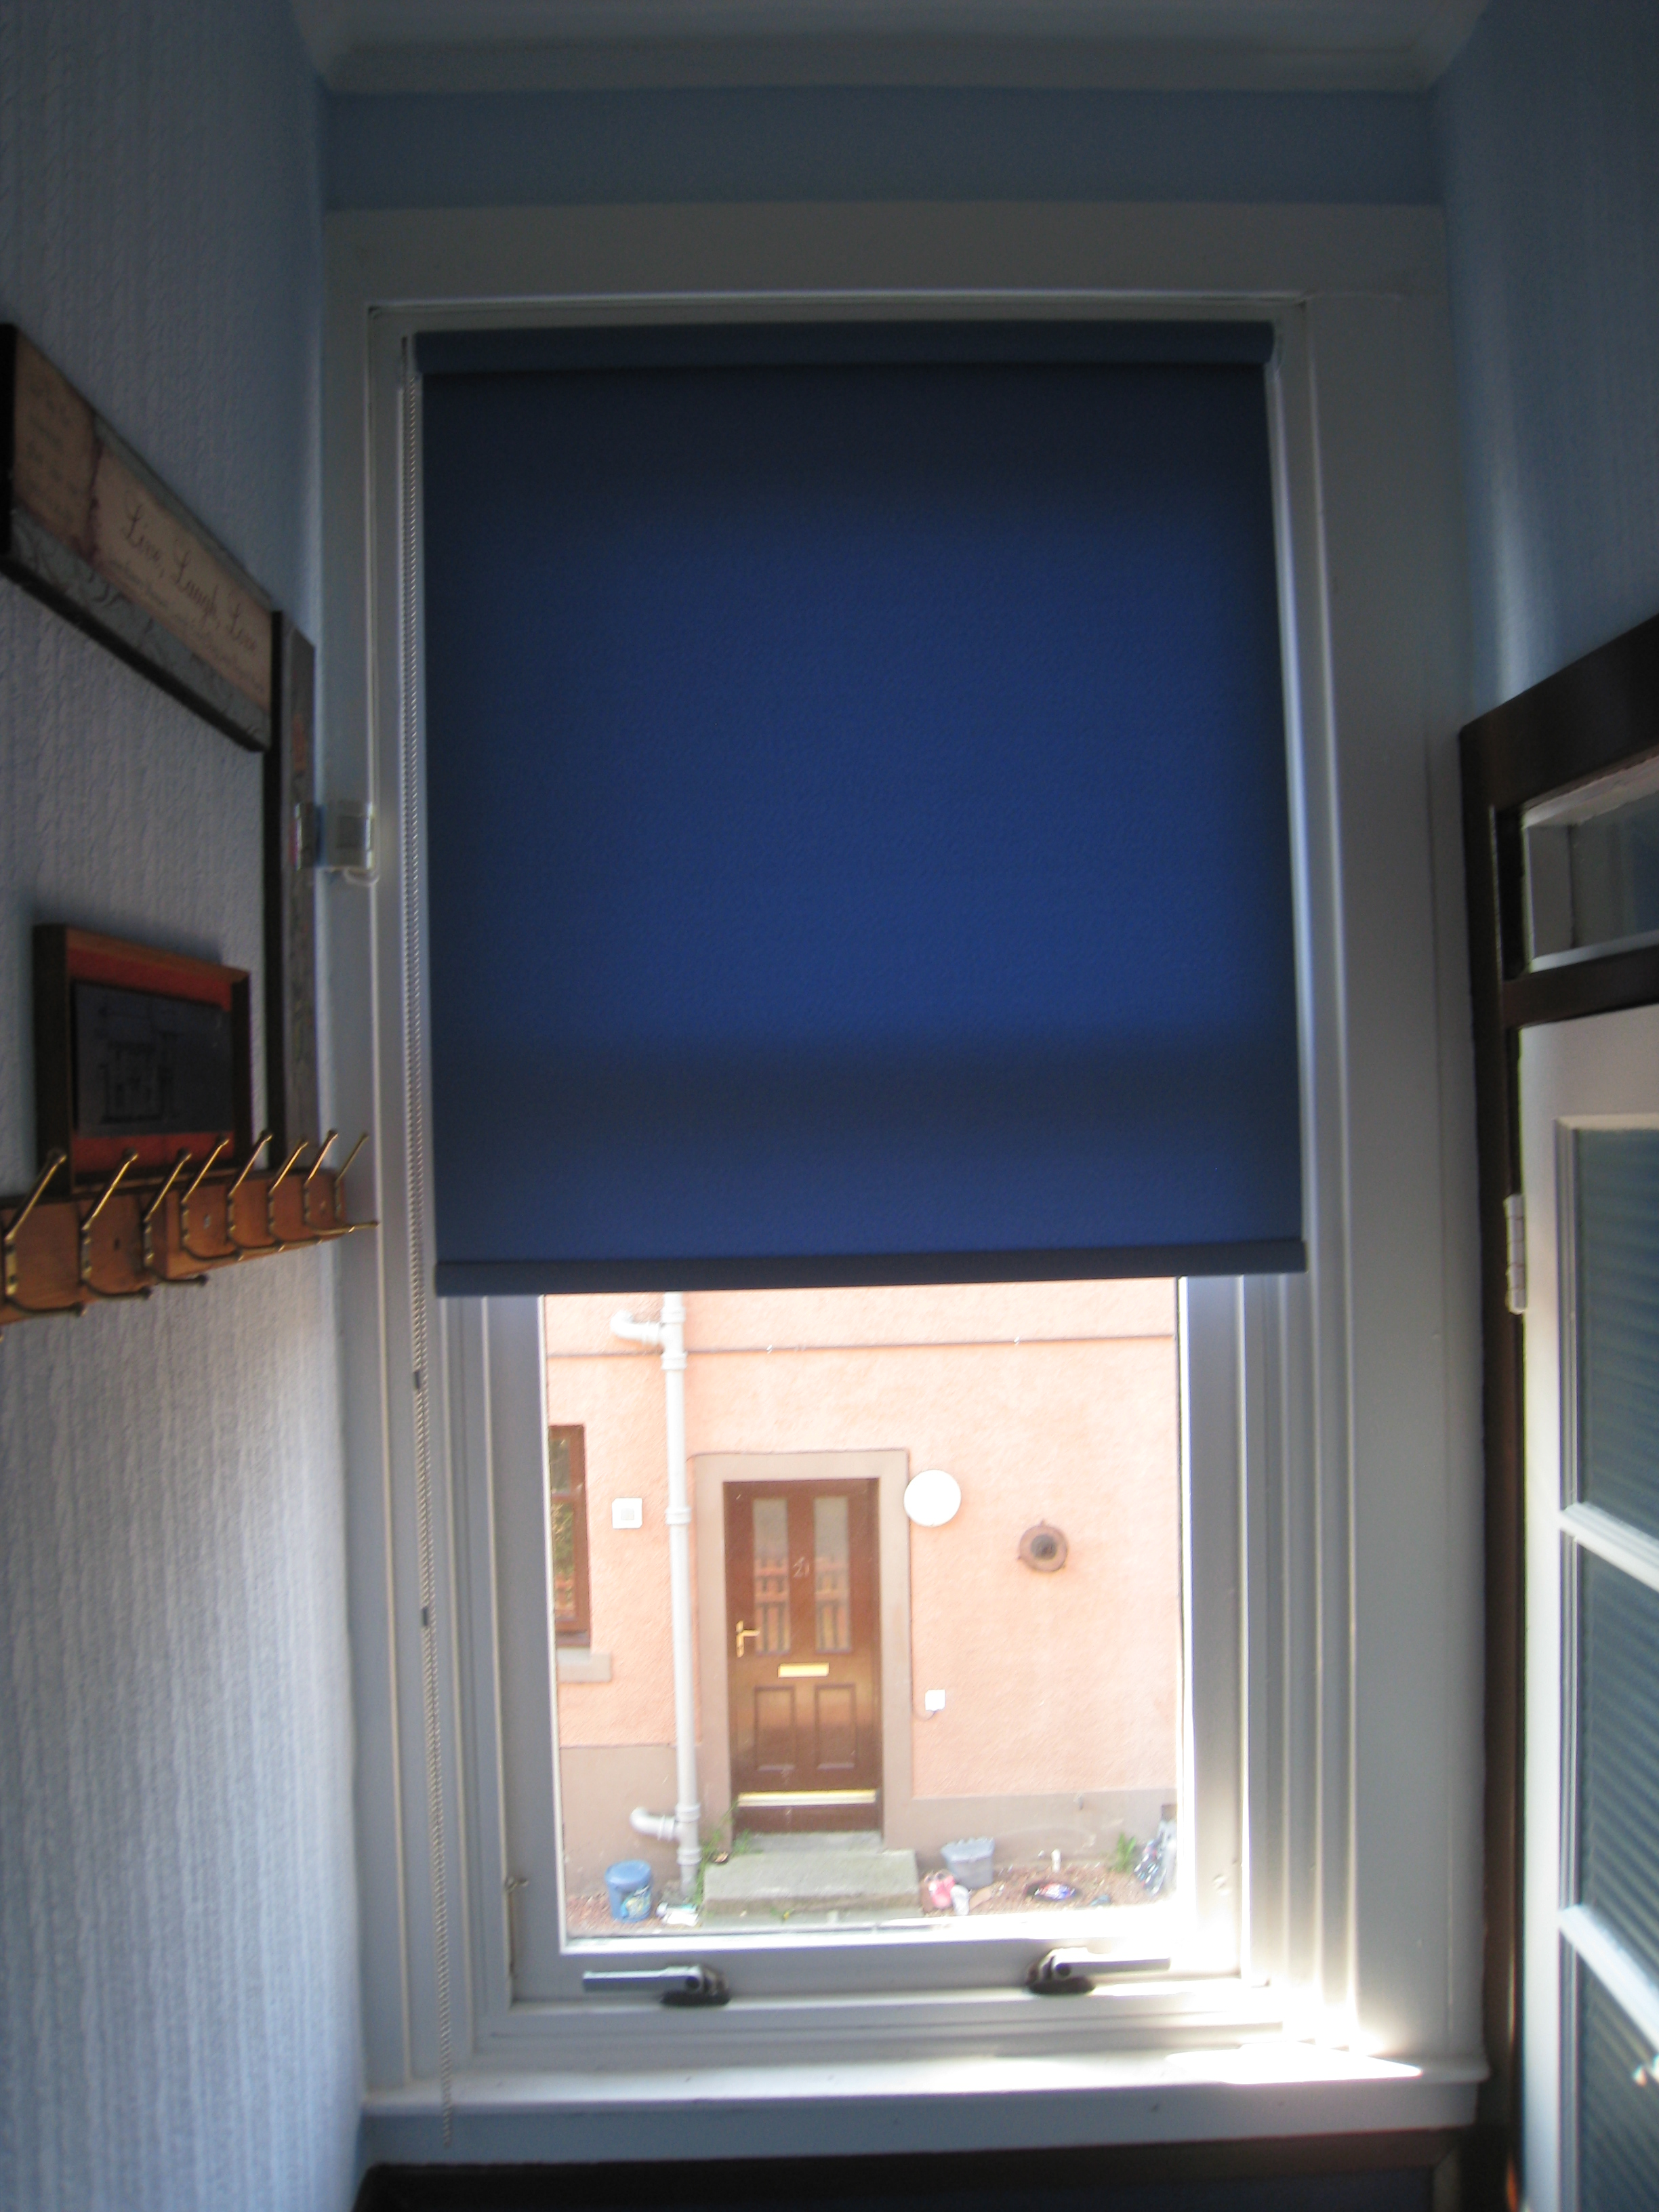 to brackets blinds shadeall on inside how mini up image youtube somersoft window for windows mount put ideas roller blind carindow screen coolaroo corner install a vinyl down shade